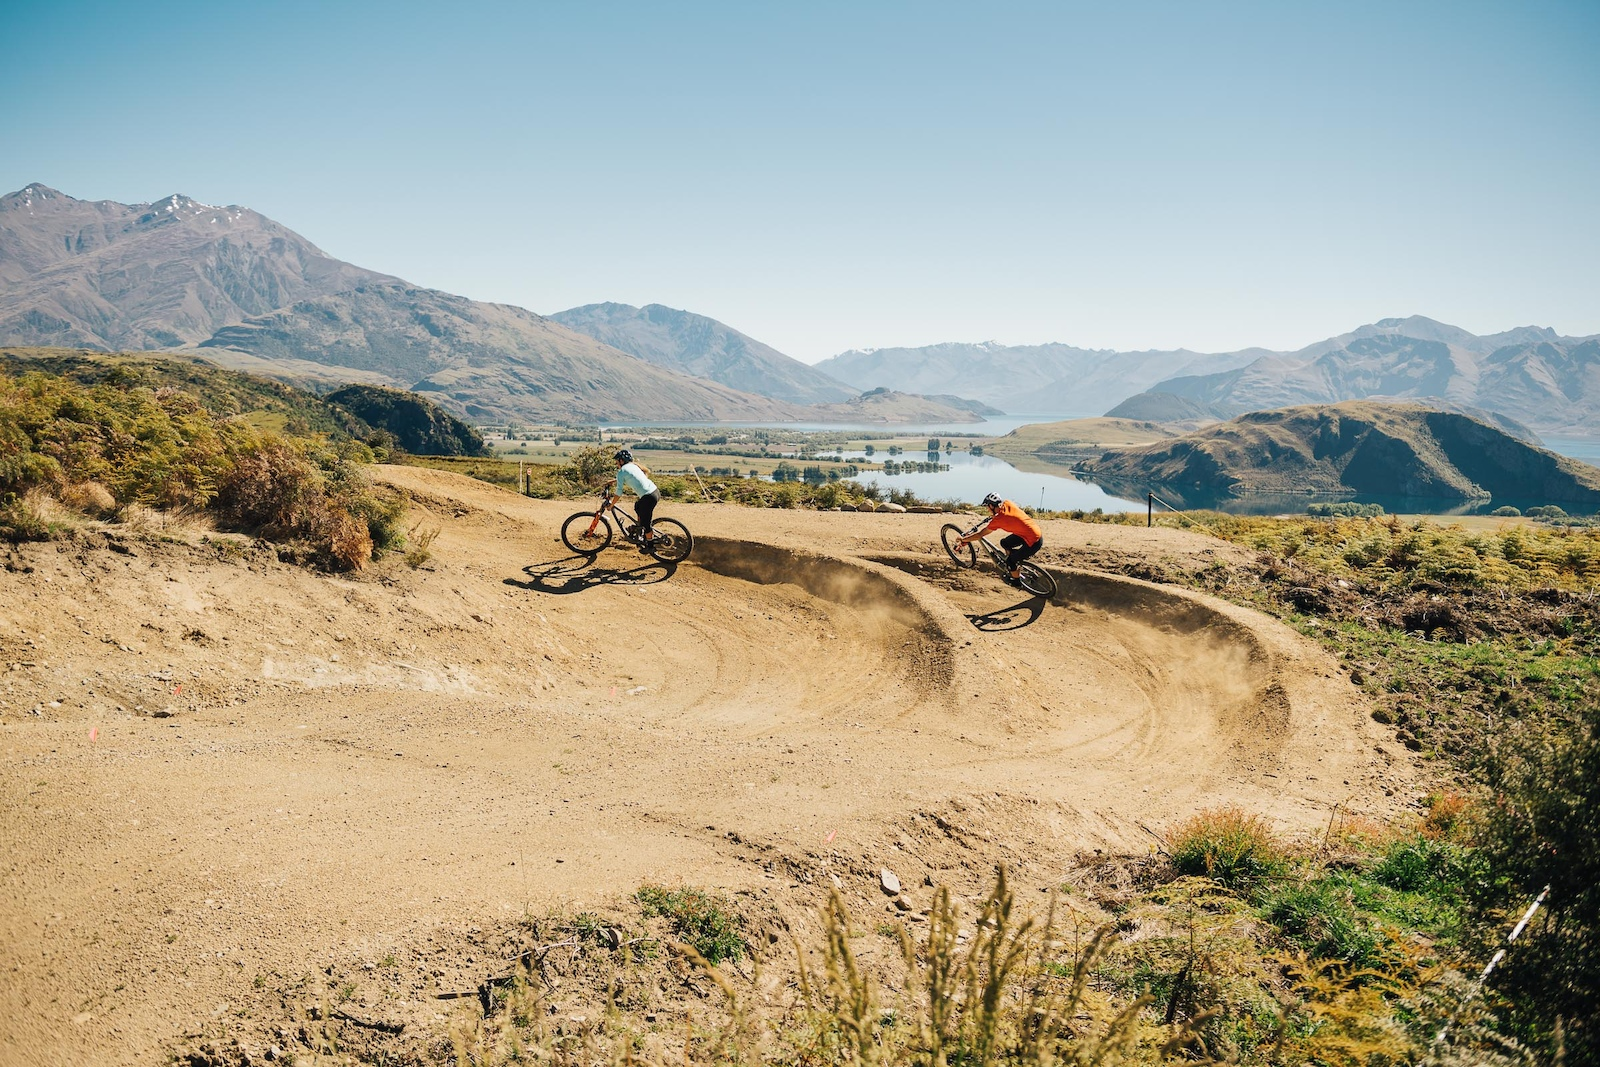 Race is on down the dual slalom track. What a backdrop for a race